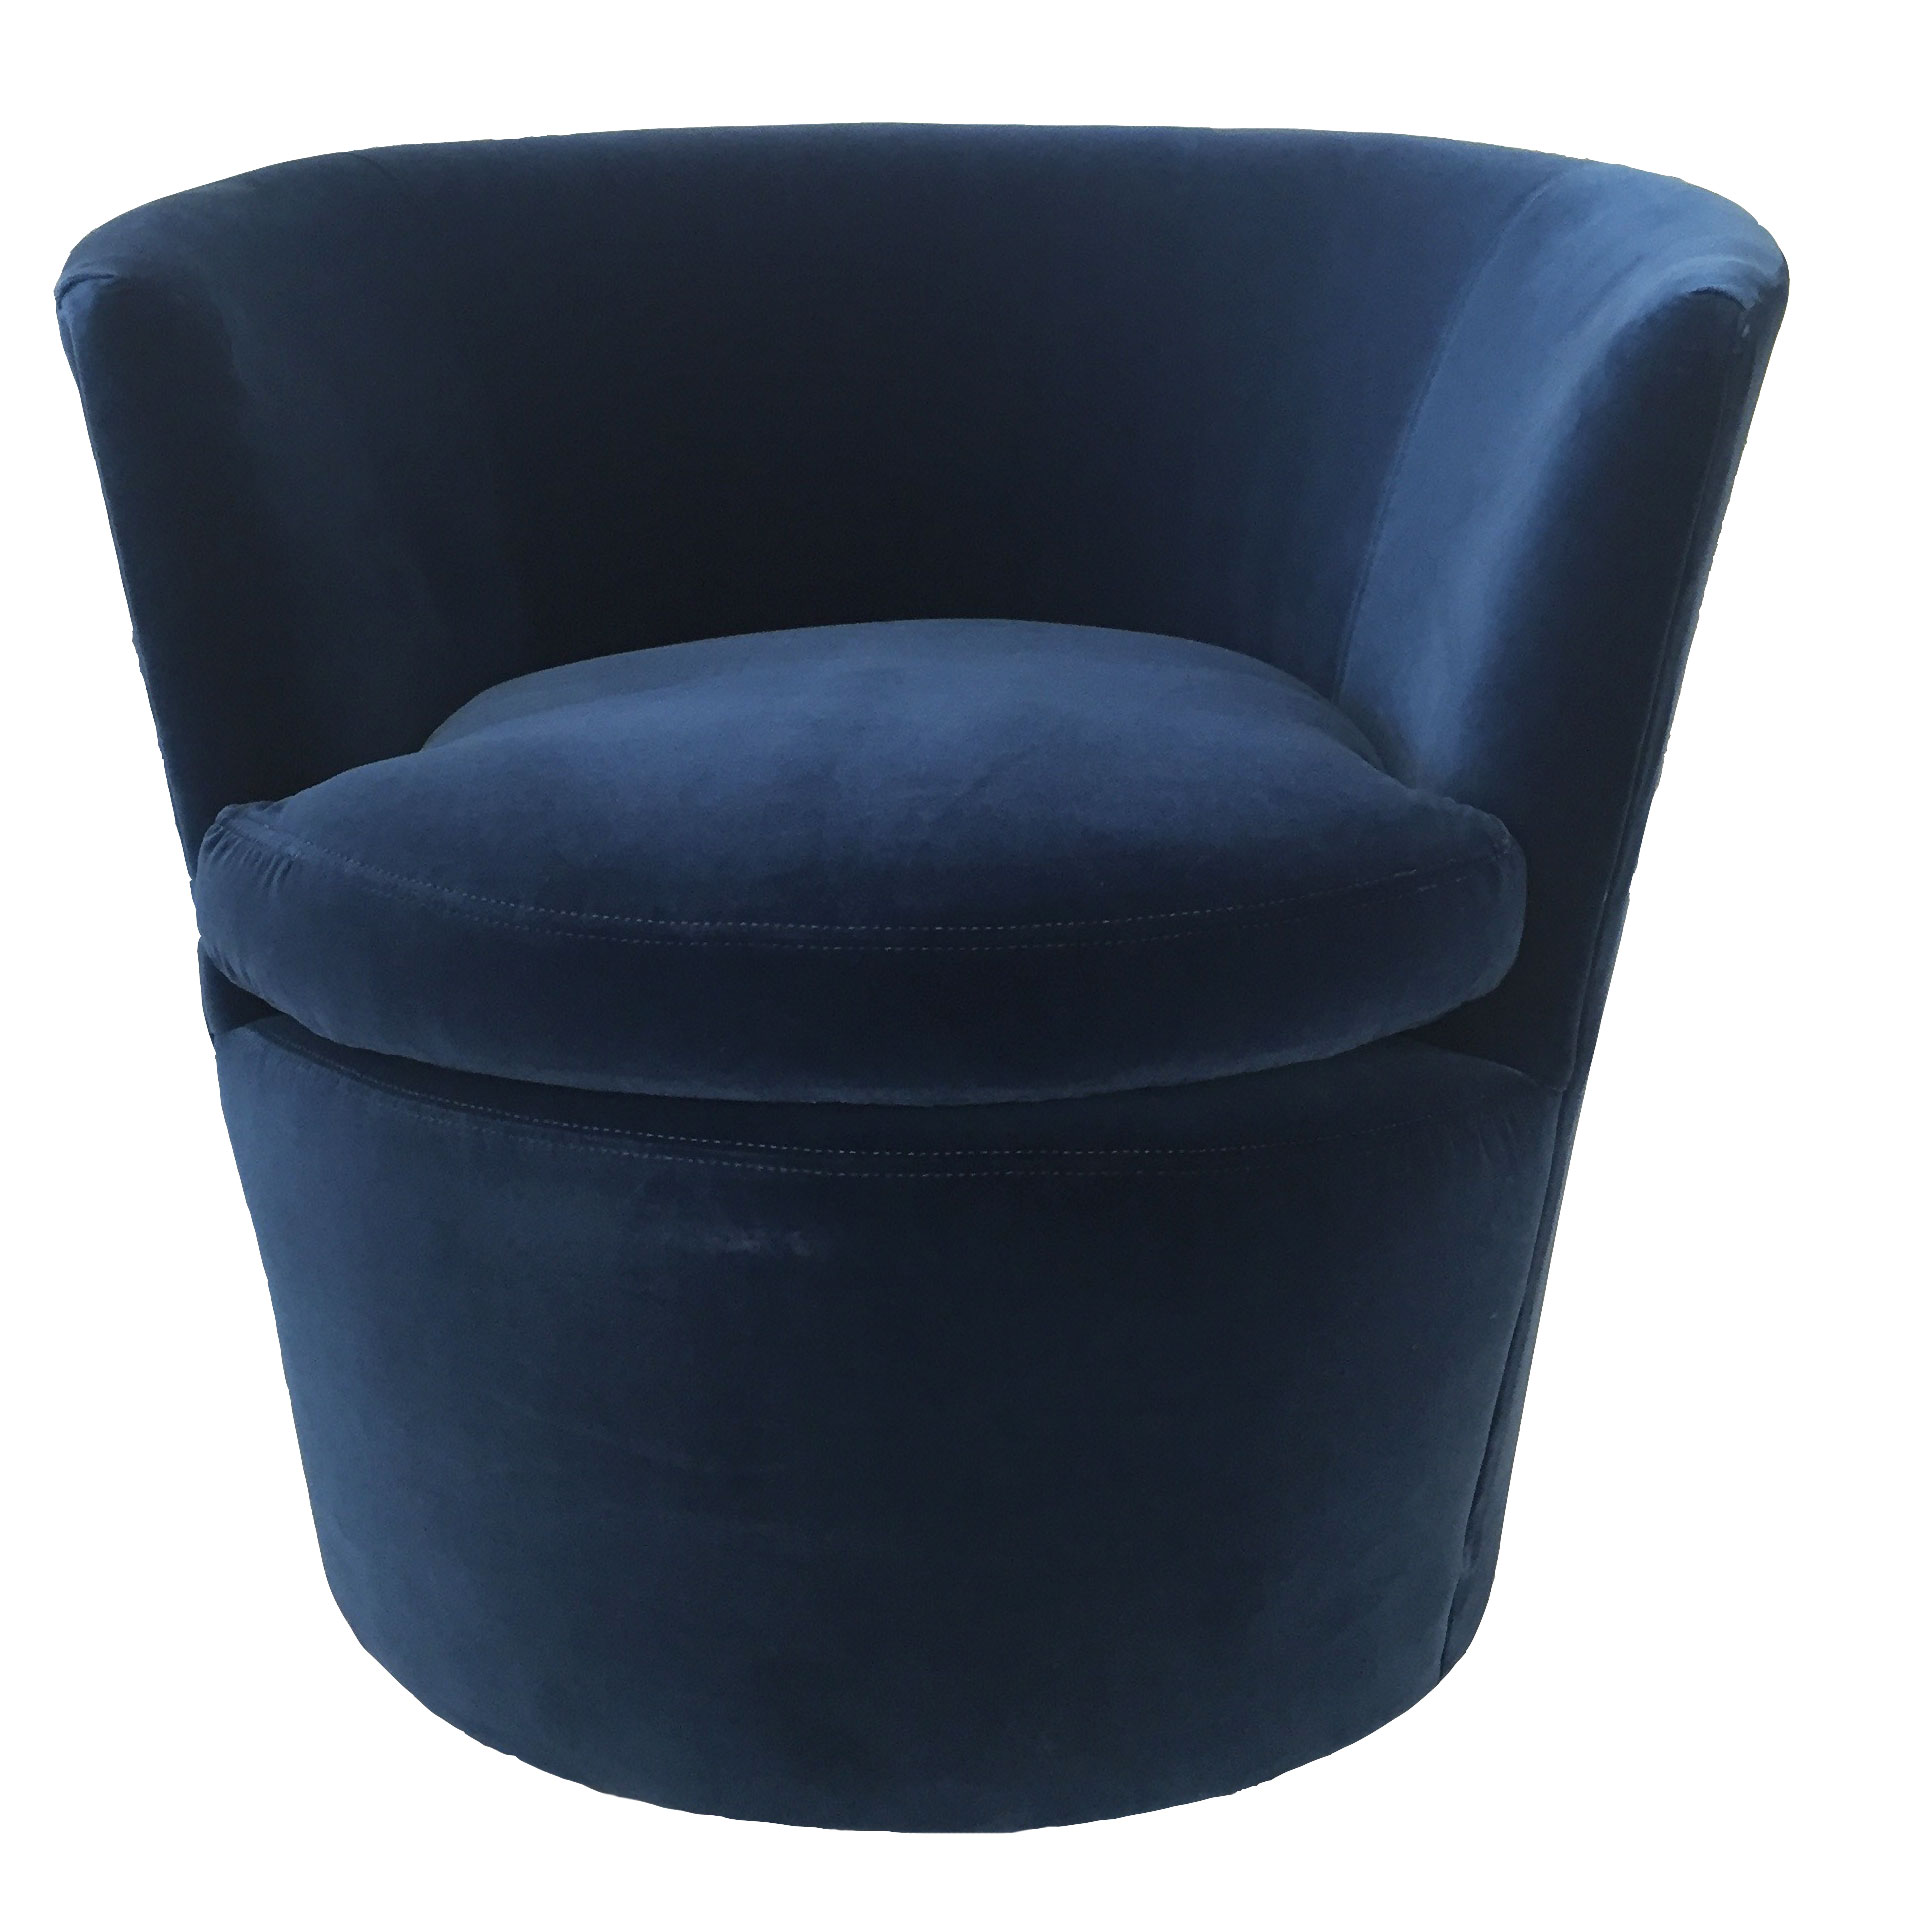 5027_Swivel_Tub_Chair_Lee.jpg